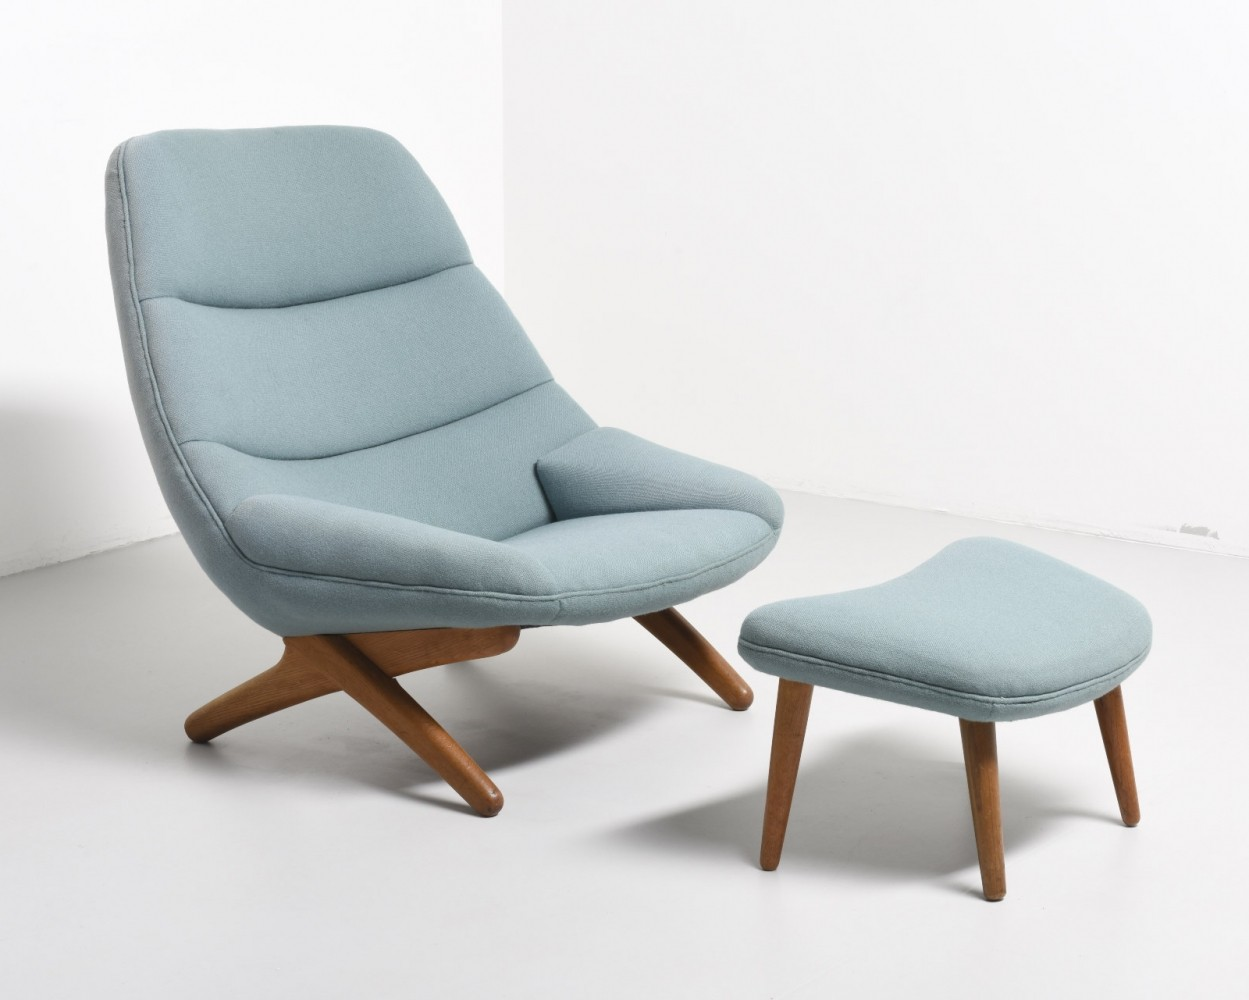 ML91 lounge chair by Illum Wikkelsø for A. Mikael Laursen, 1960s